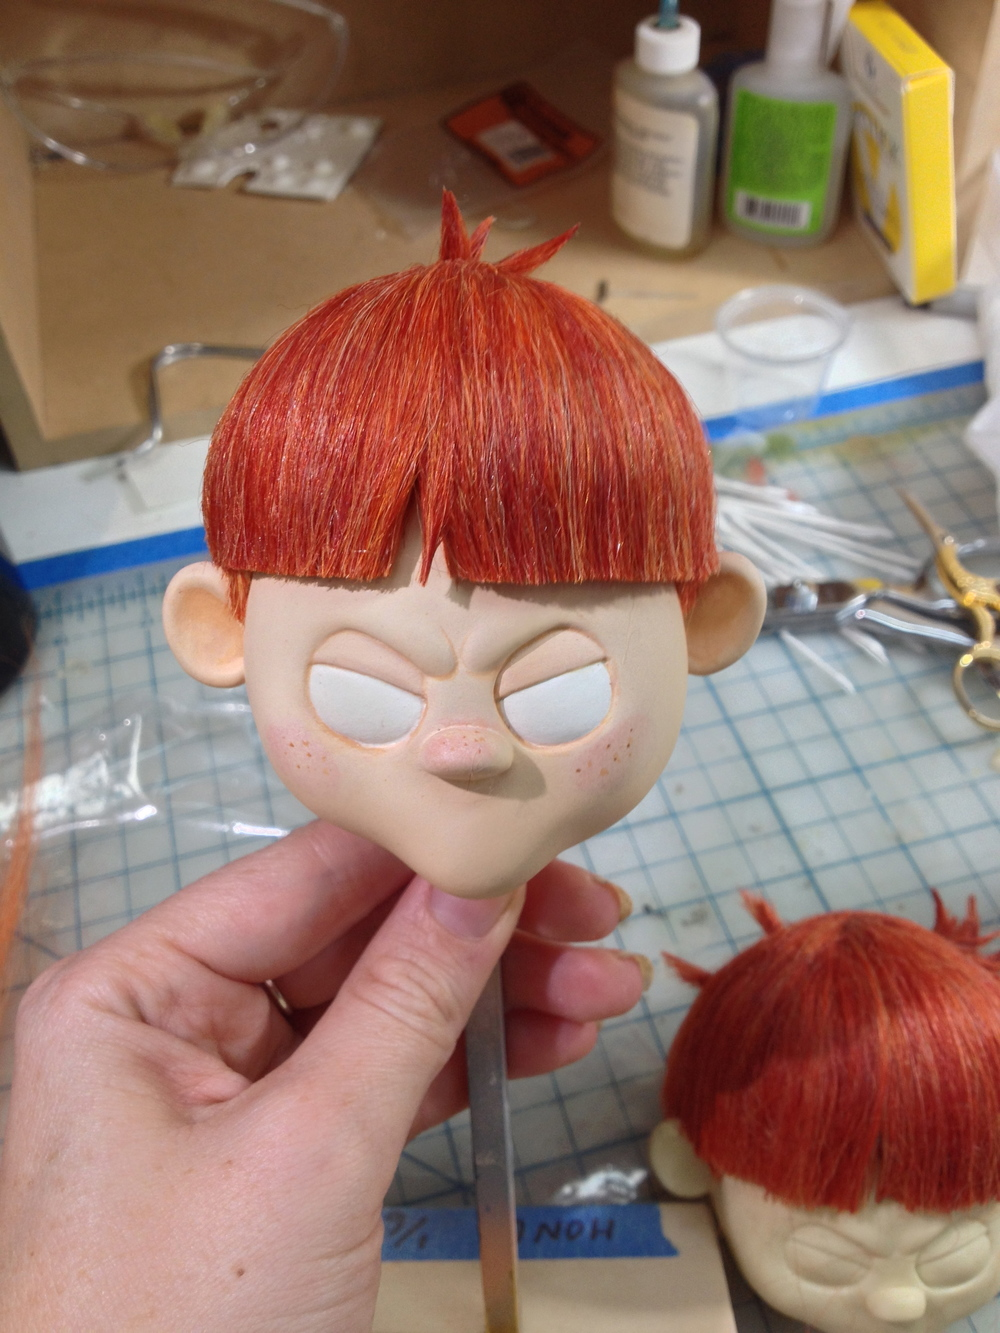 Styled/applied hair for all puppets in 2013 Happy Honda Days holiday commercial spots for Shadow Machine Animation